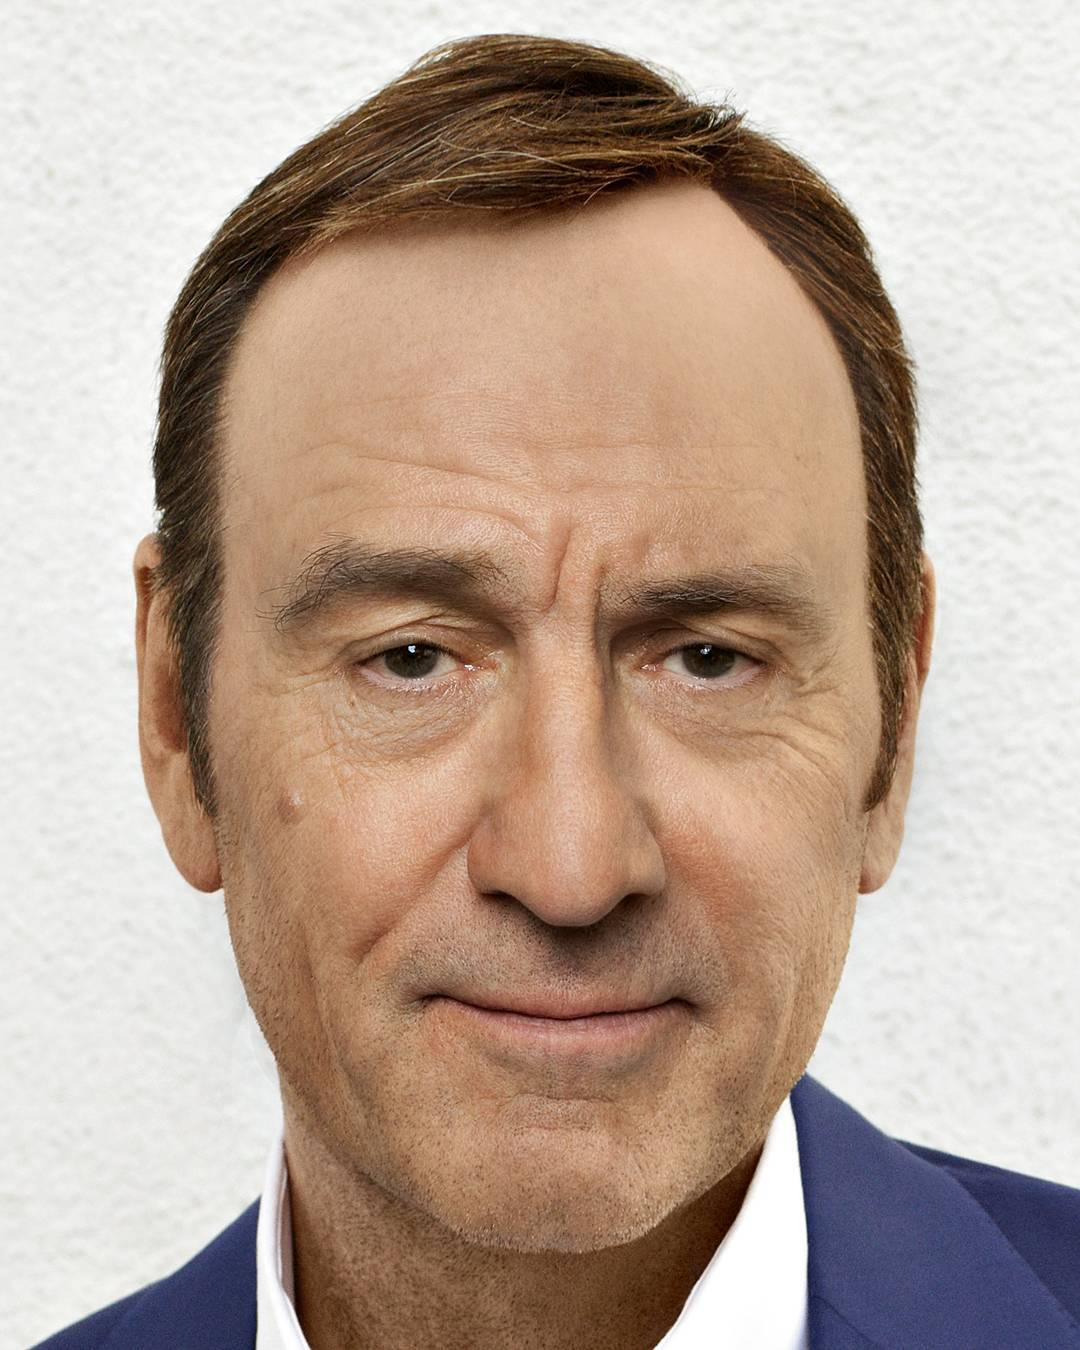 Photoshop Guru Fuses Celebrity Faces Together - Robert de Niro and Kevin Spacey